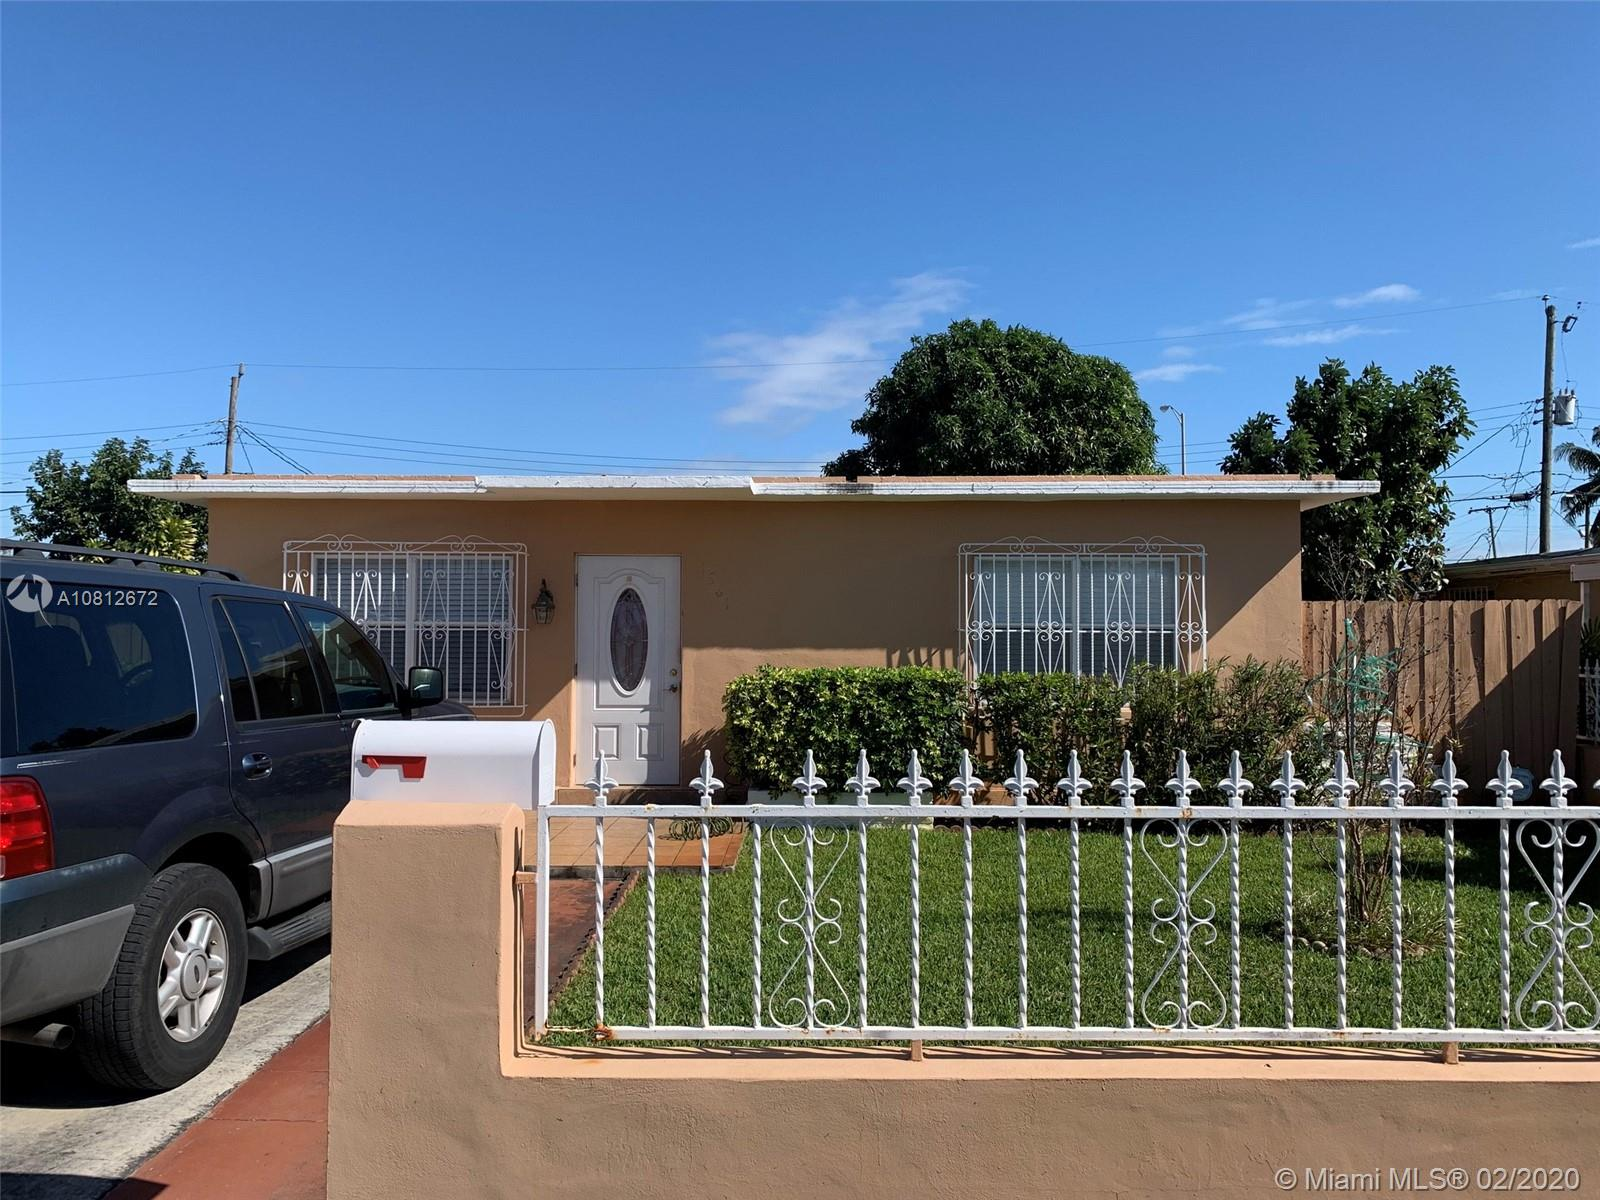 1561 E 9th Ct, Hialeah, Florida 33010, 3 Bedrooms Bedrooms, ,2 BathroomsBathrooms,Residential,For Sale,1561 E 9th Ct,A10812672